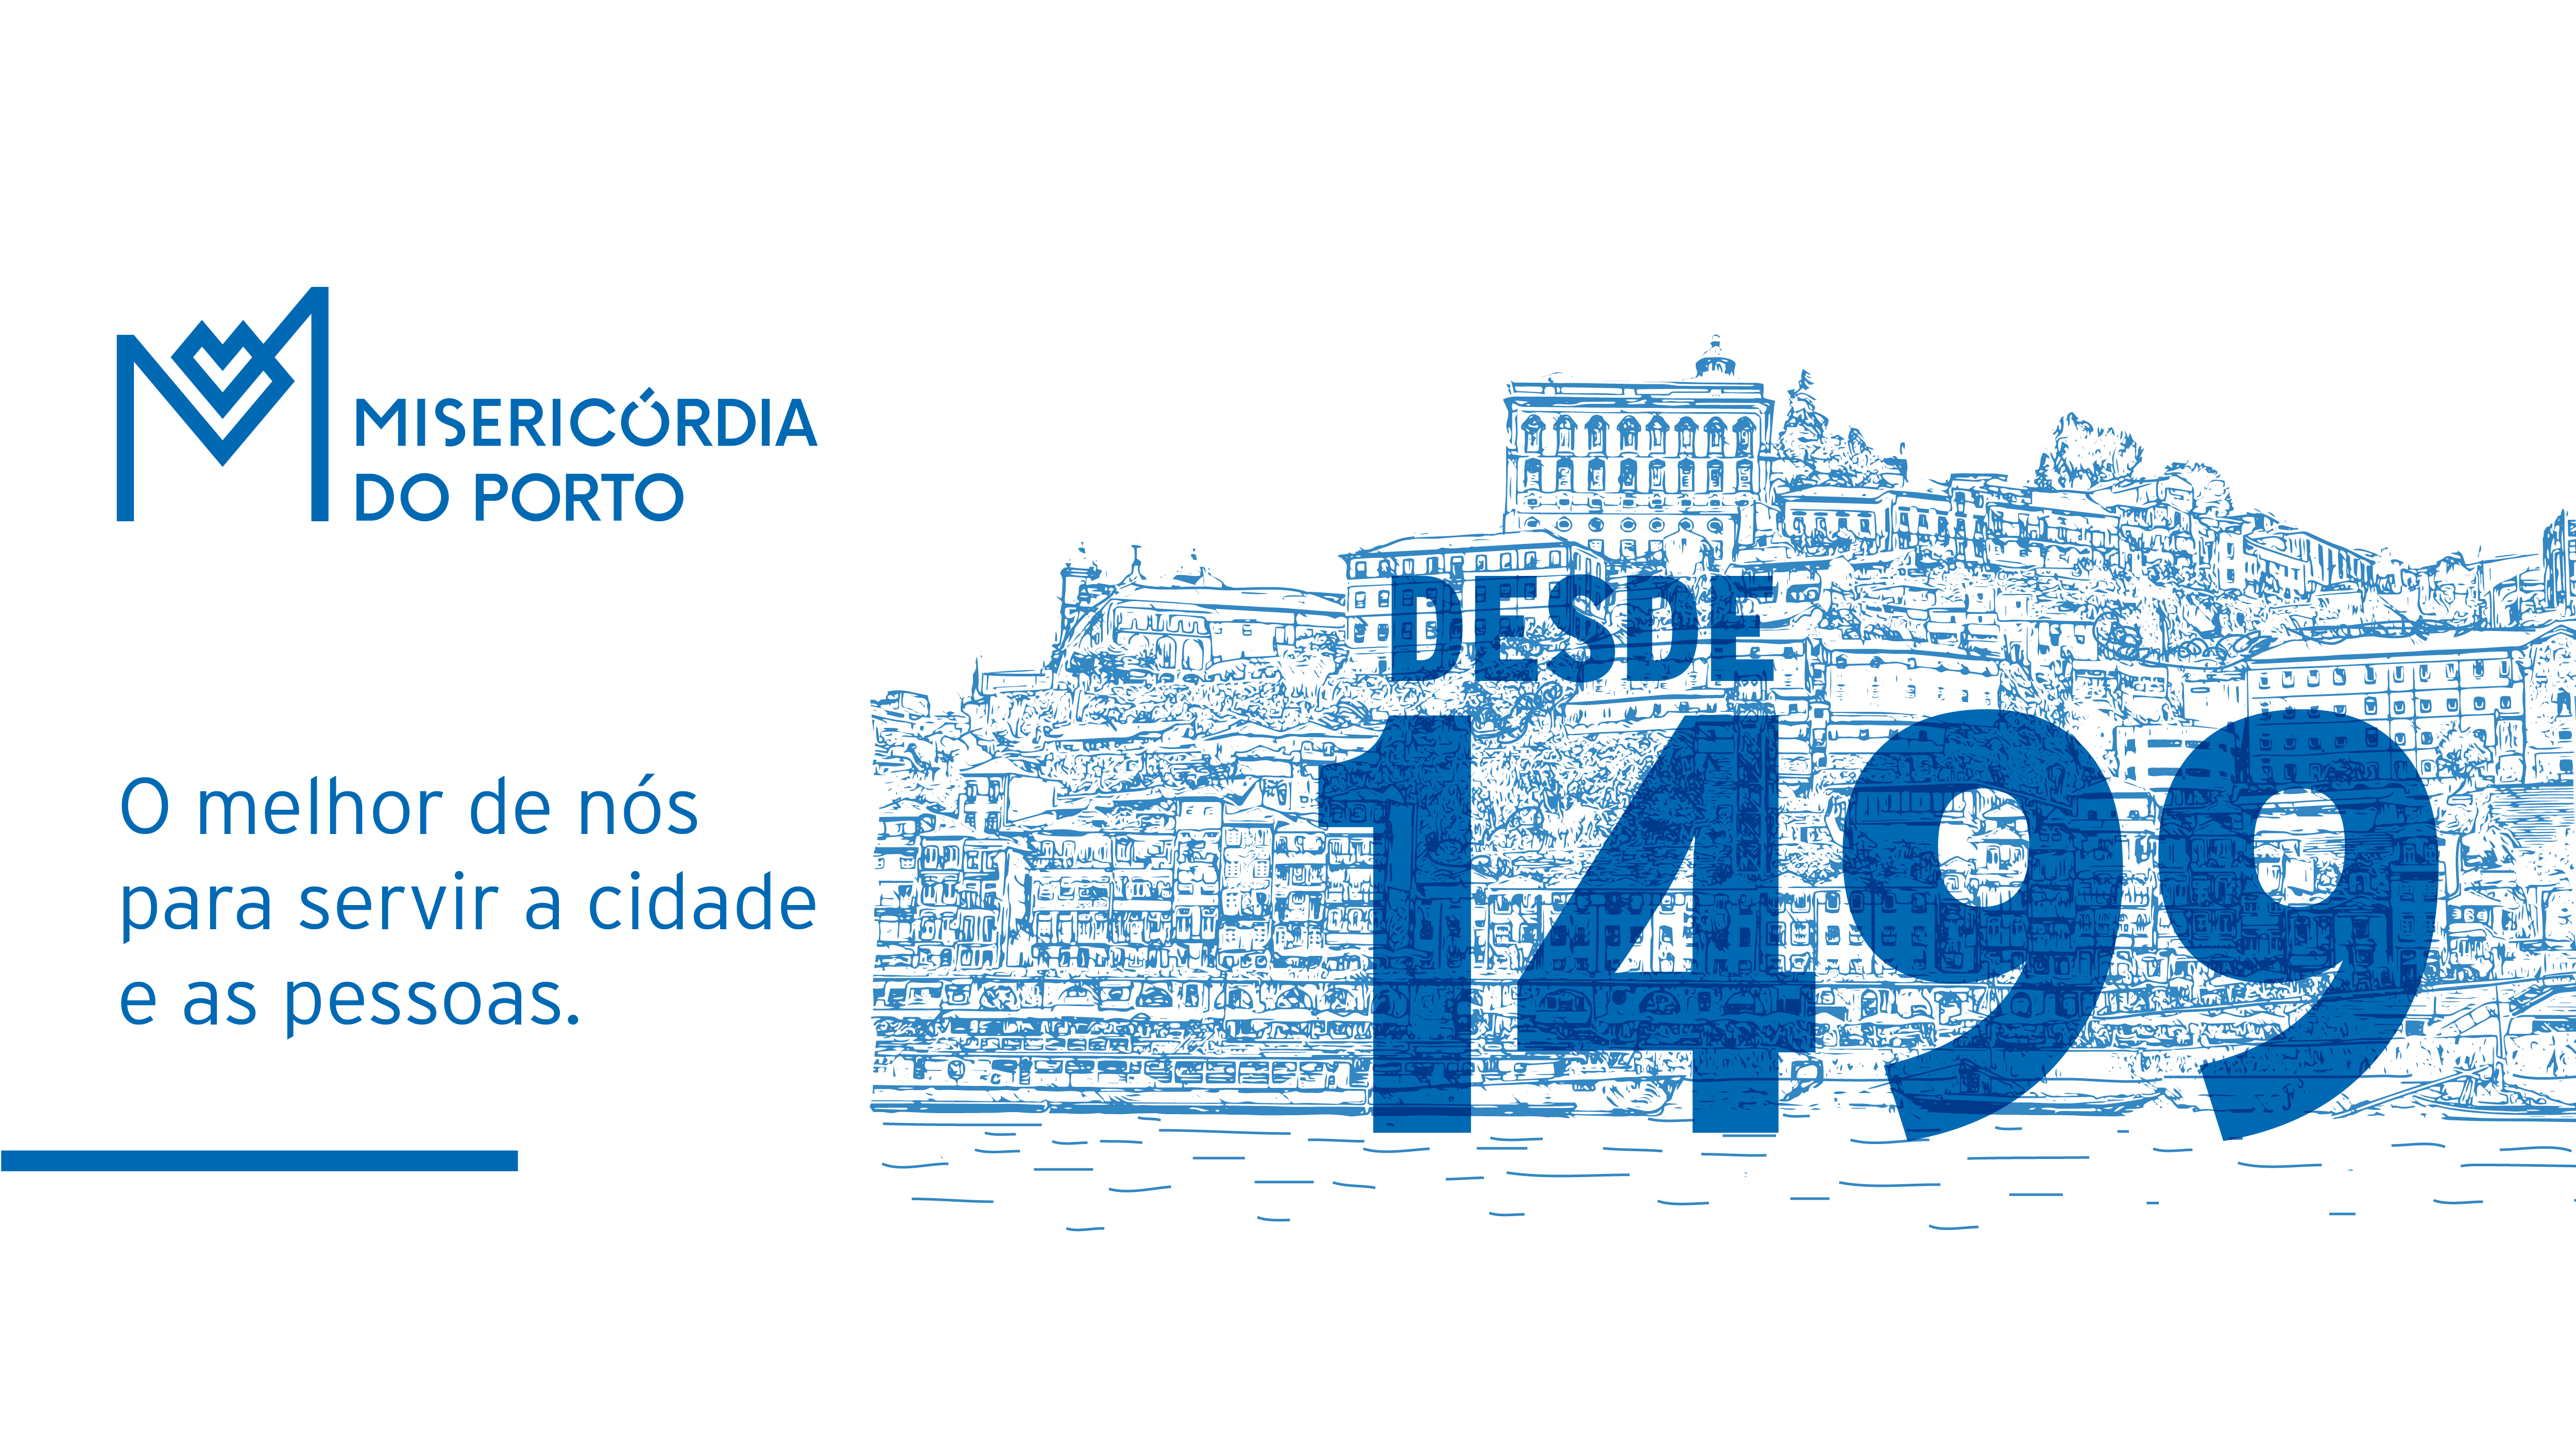 https://www.scmp.pt/assets/misc/img/Instituicao/Banner%20Institucional/SCMP%20aniversario%20FB%20coverphoto.png